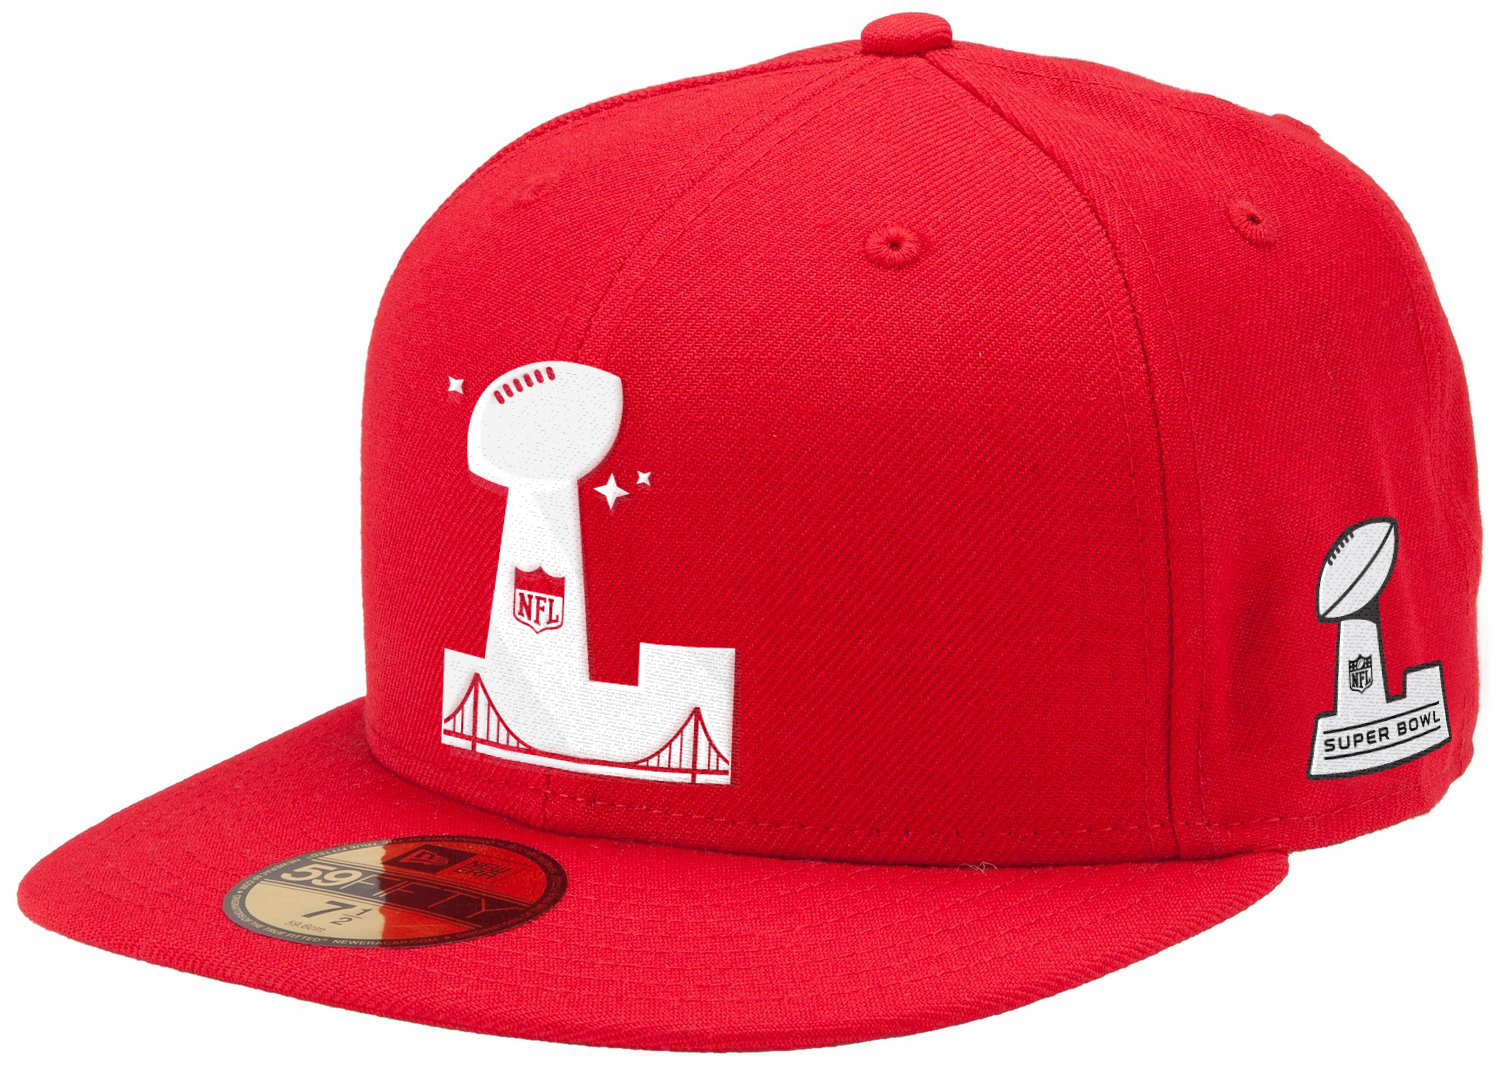 Commemorative hat concept (please don't sue me)